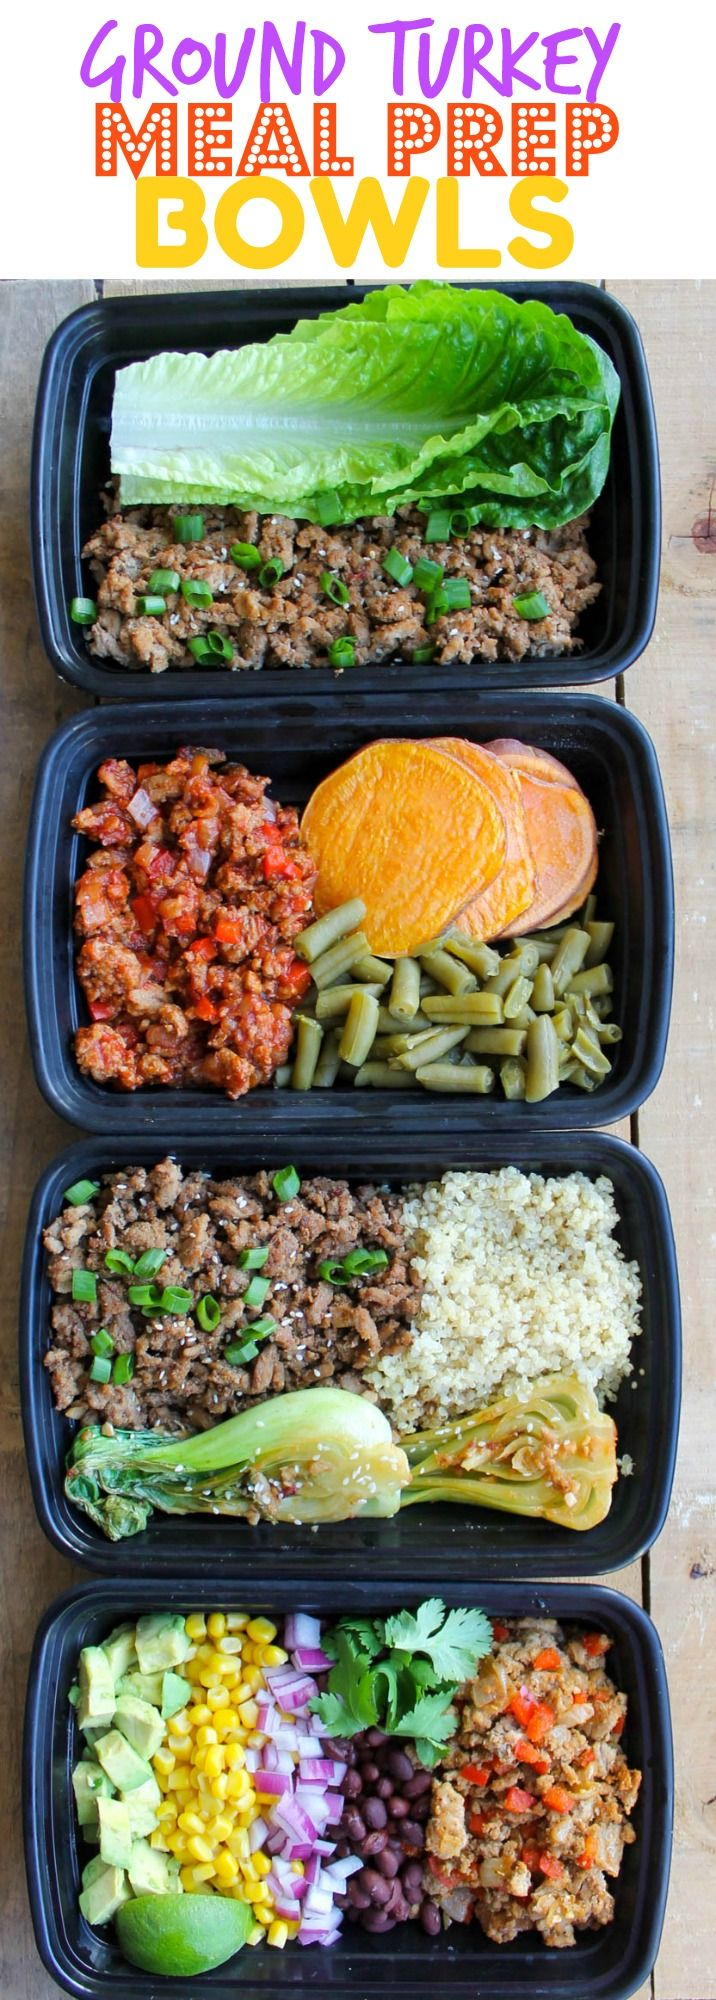 Easy Ground Turkey Meal Prep Bowls: 4 Ways - these healthy meal prep recipes come together so quickly and are budget-friendly too!